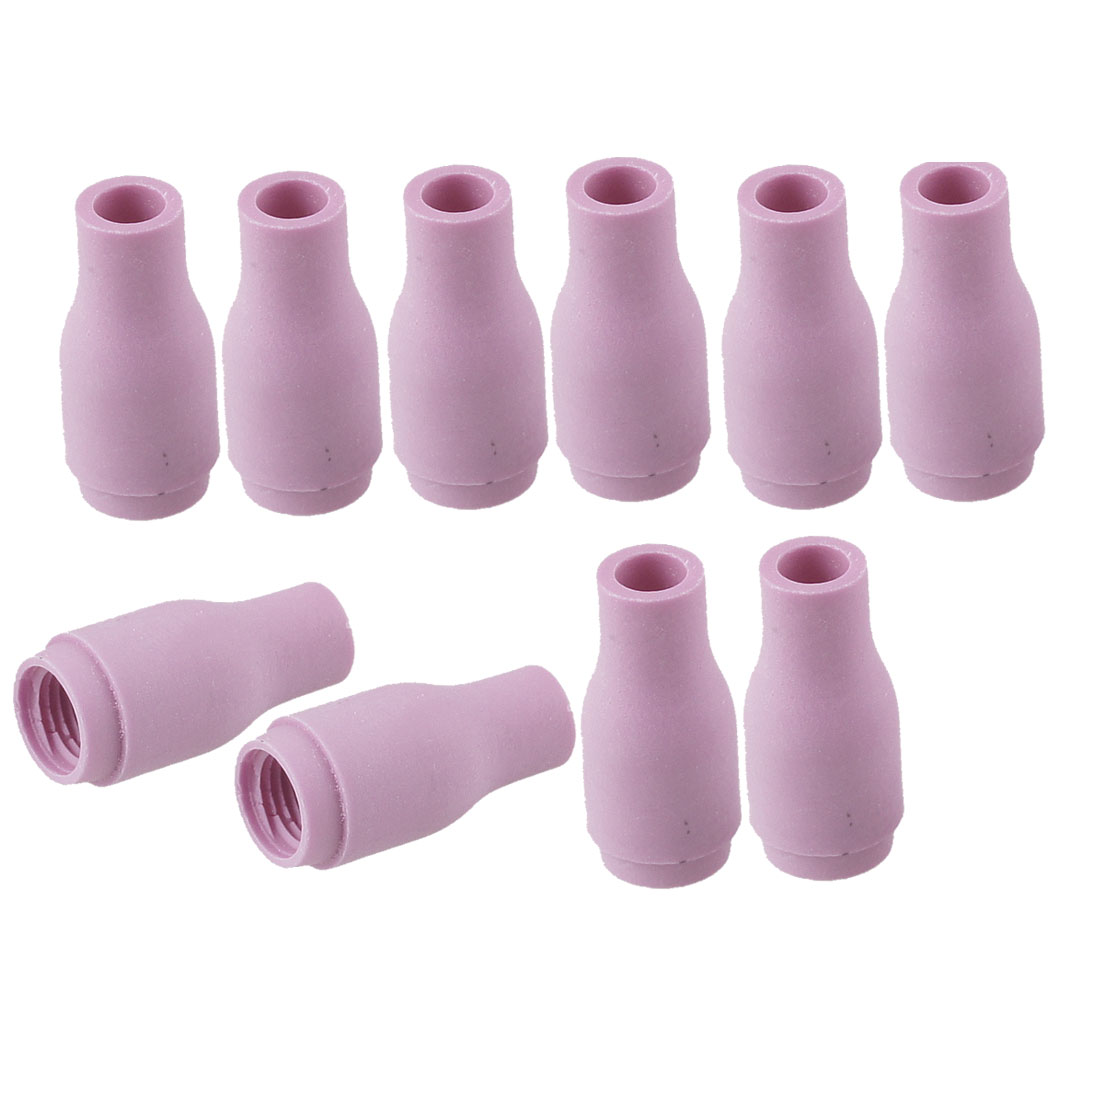 10 Pcs Welding Torch Alumina Ceramic Cup Nozzles 13N08 #4 for Torch 9 20